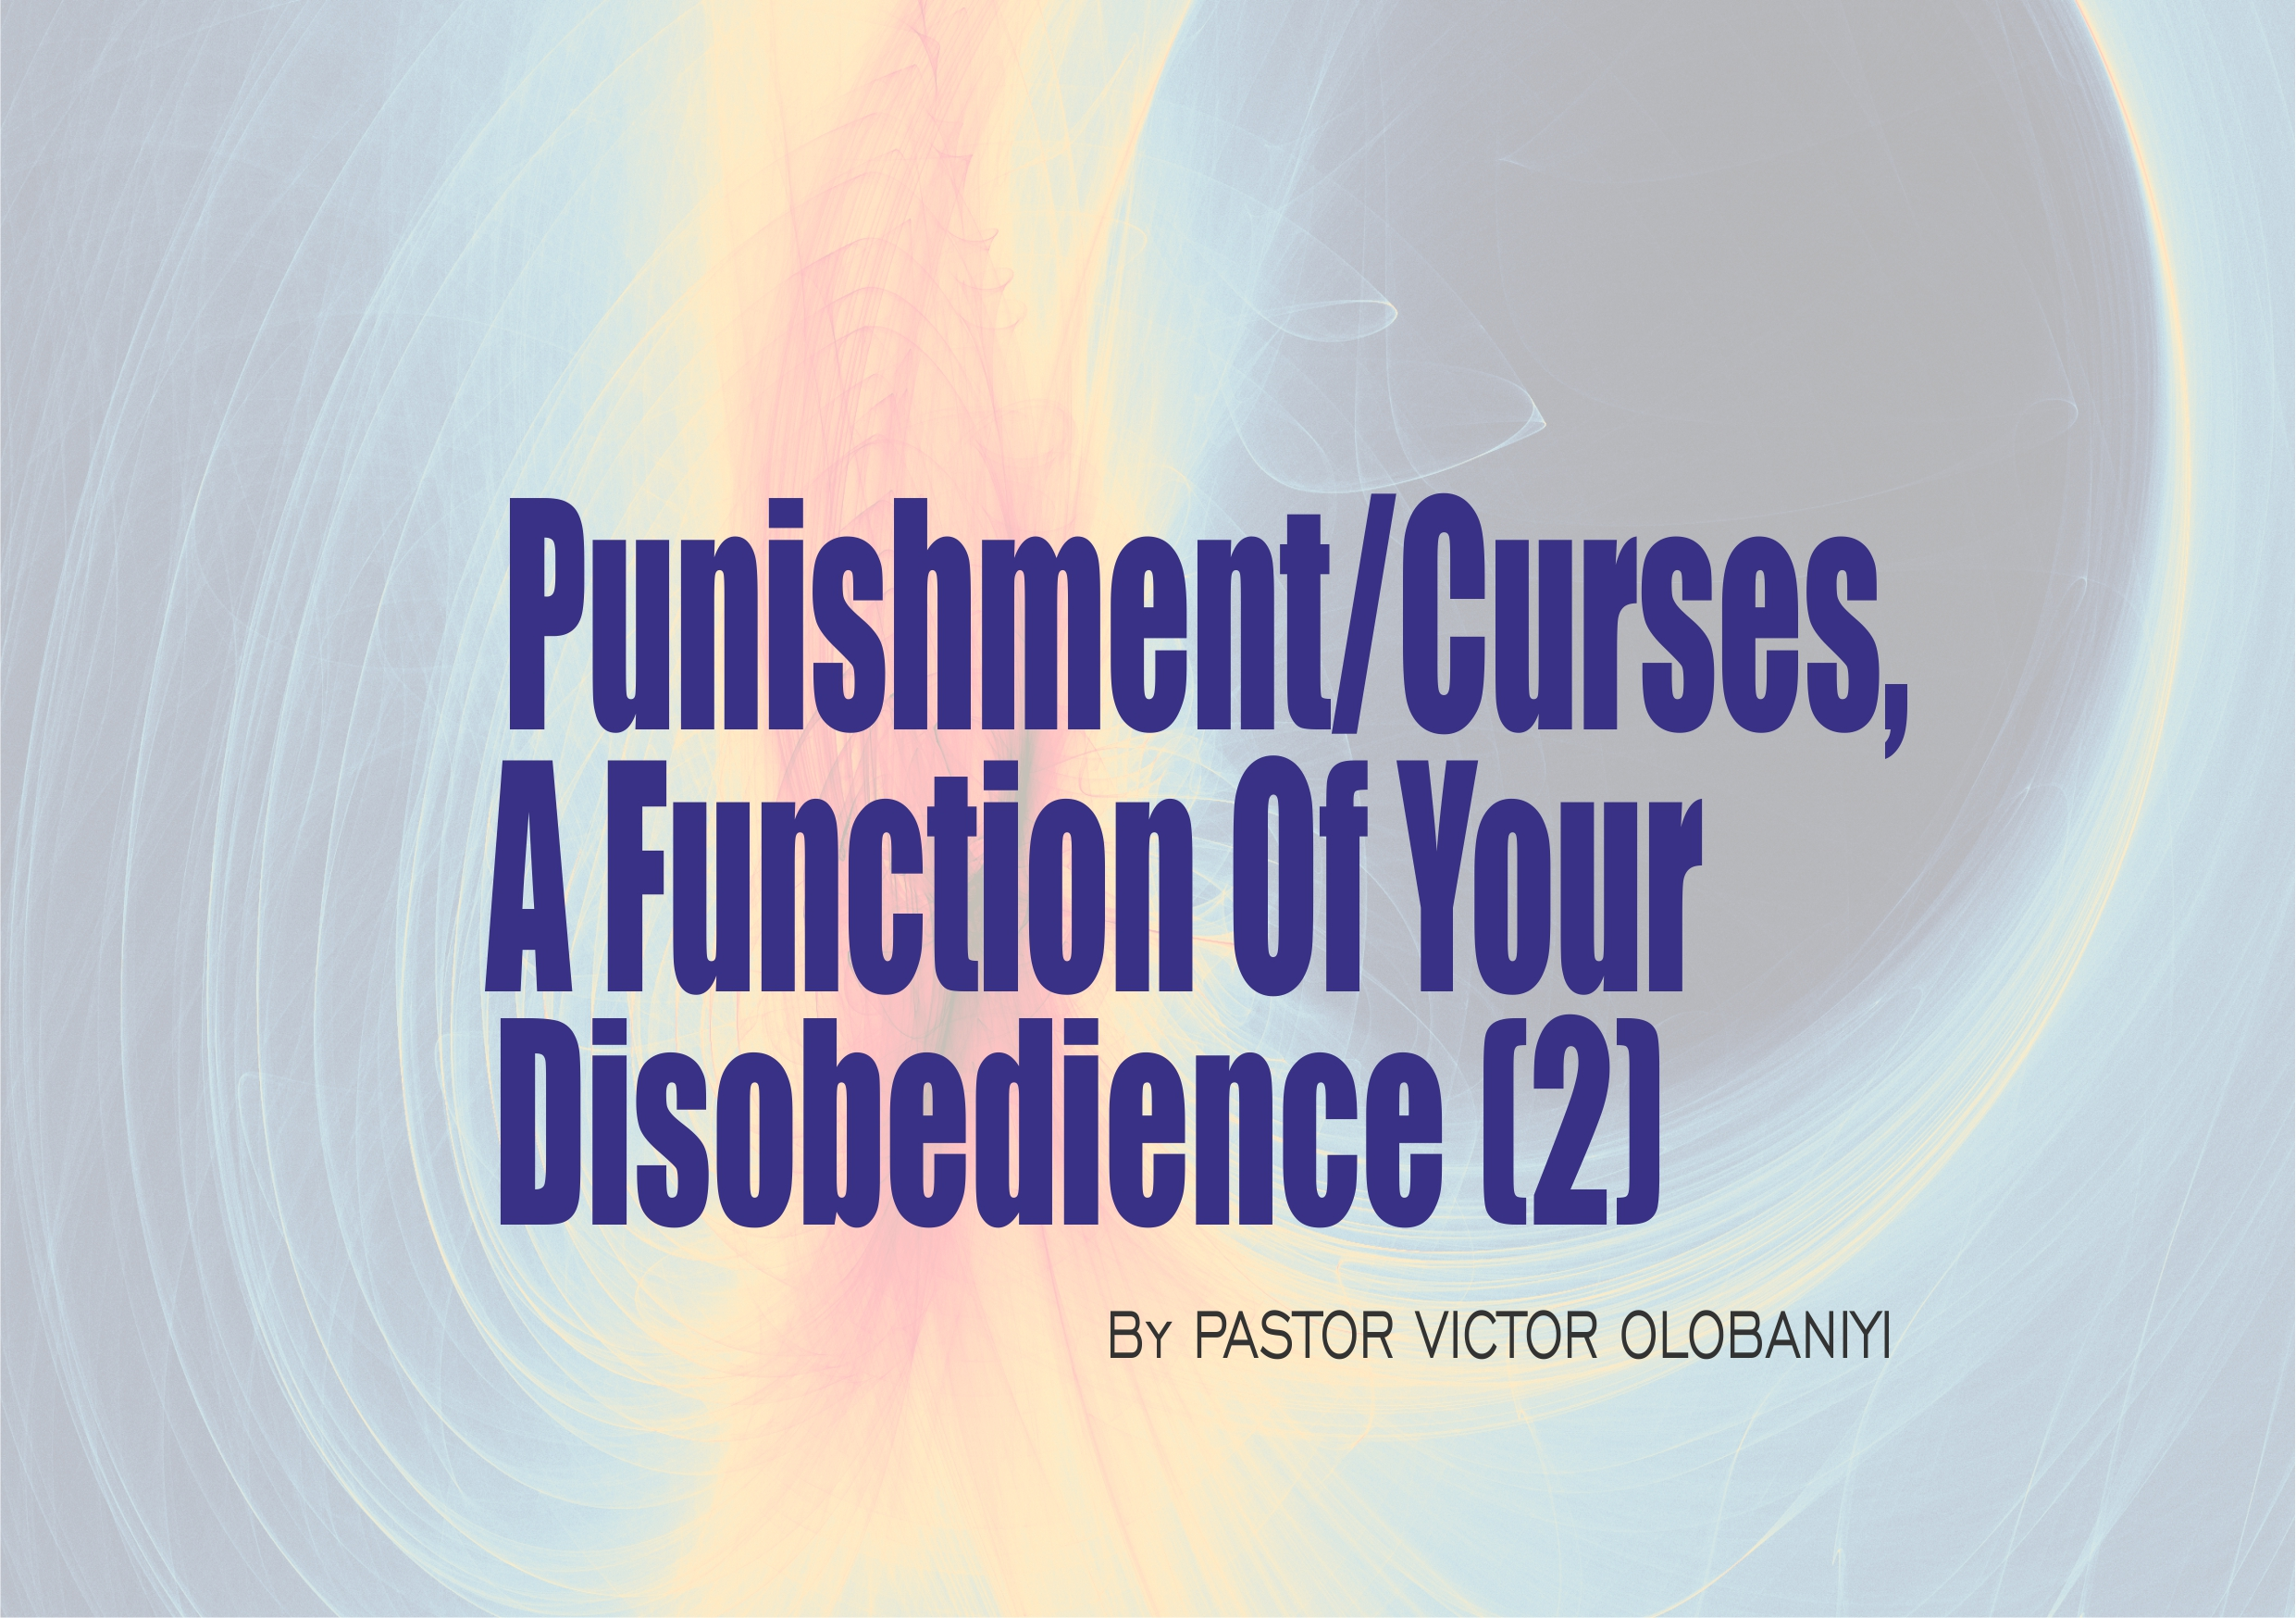 Punishment/Curses, A Function of Your Disobedience, by Pastor Victor Olobaniyi